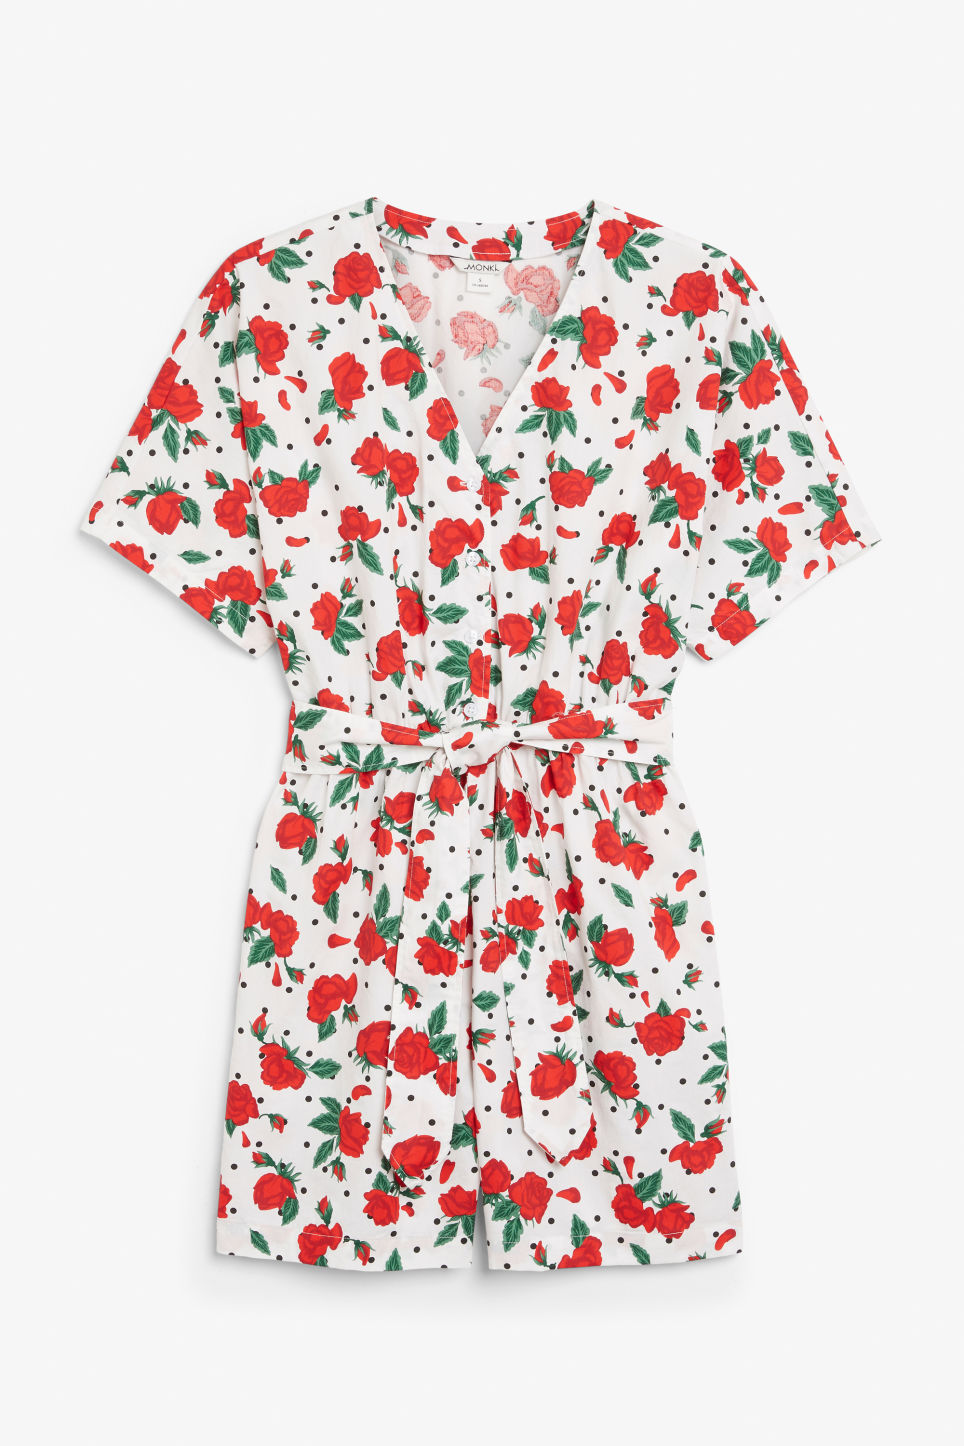 ac148f67c04 V-necked playsuit - Polka dots and roses - Jumpsuits - Monki